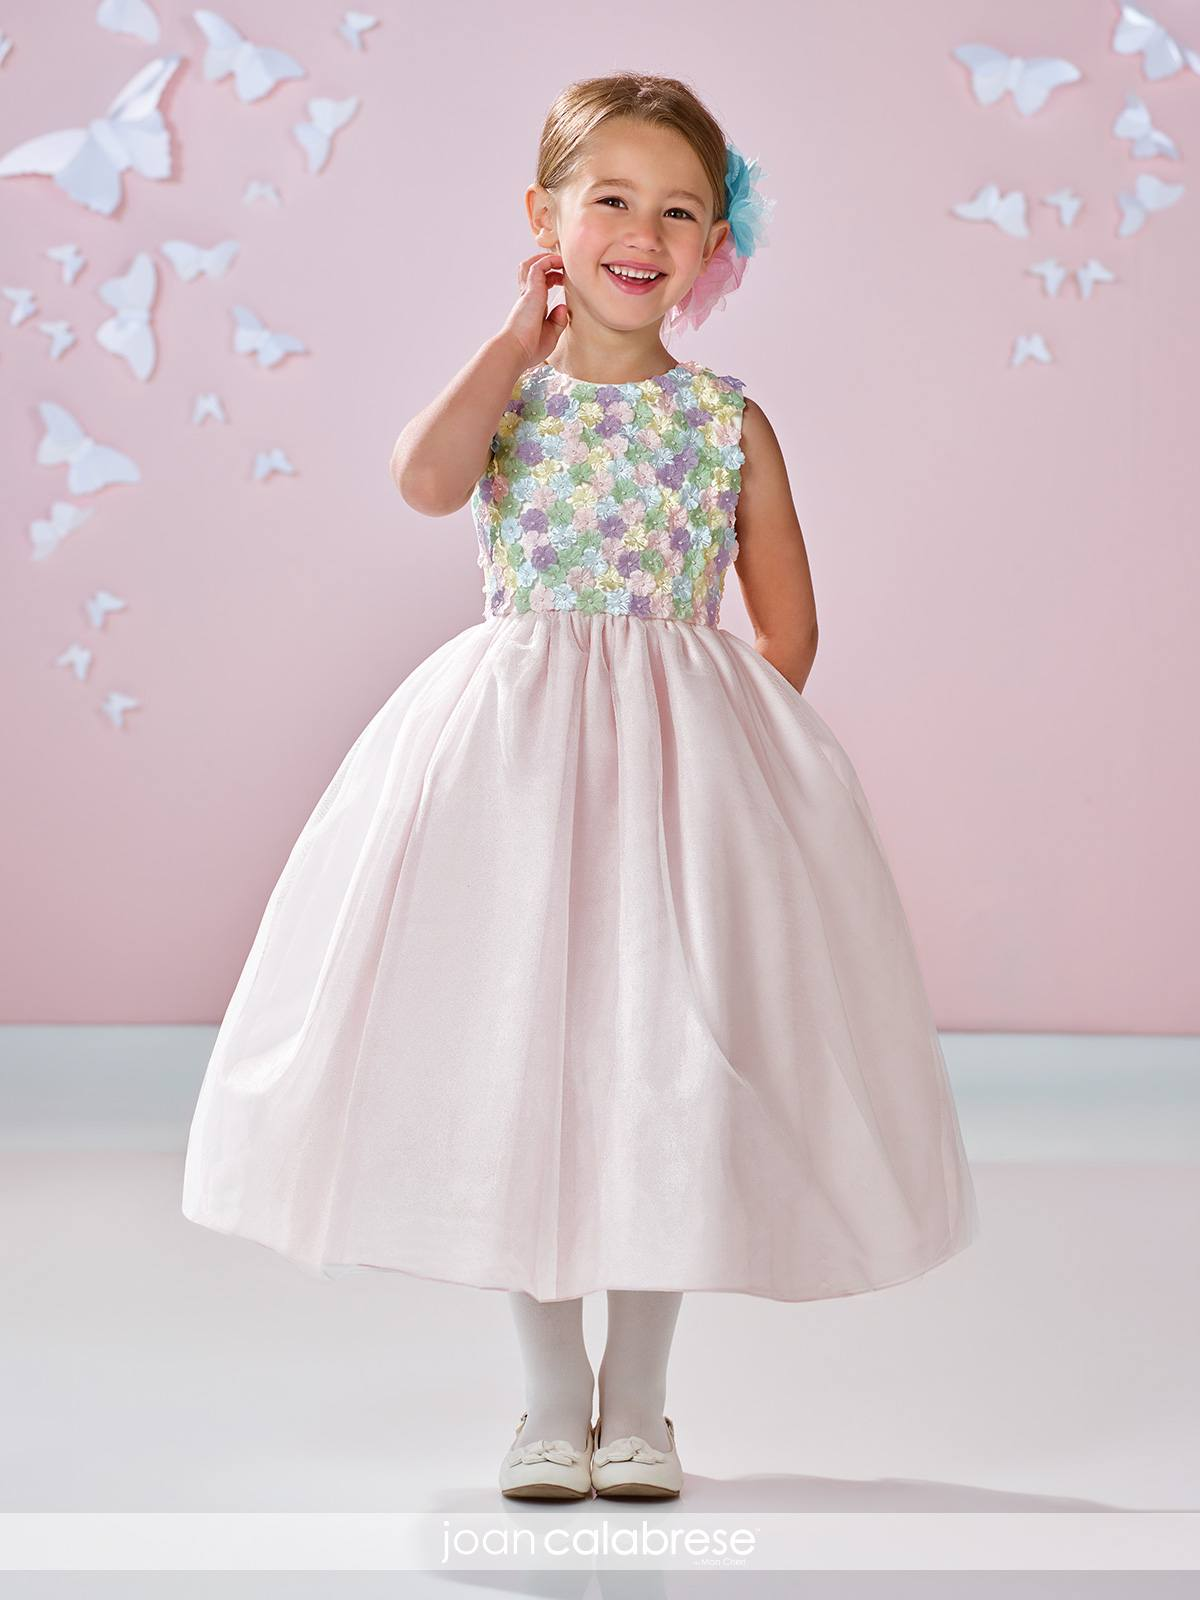 Funky-Flower-Girl-Outfit Funky Outfits for Wedding-30 Funky Styles for Wedding Guests